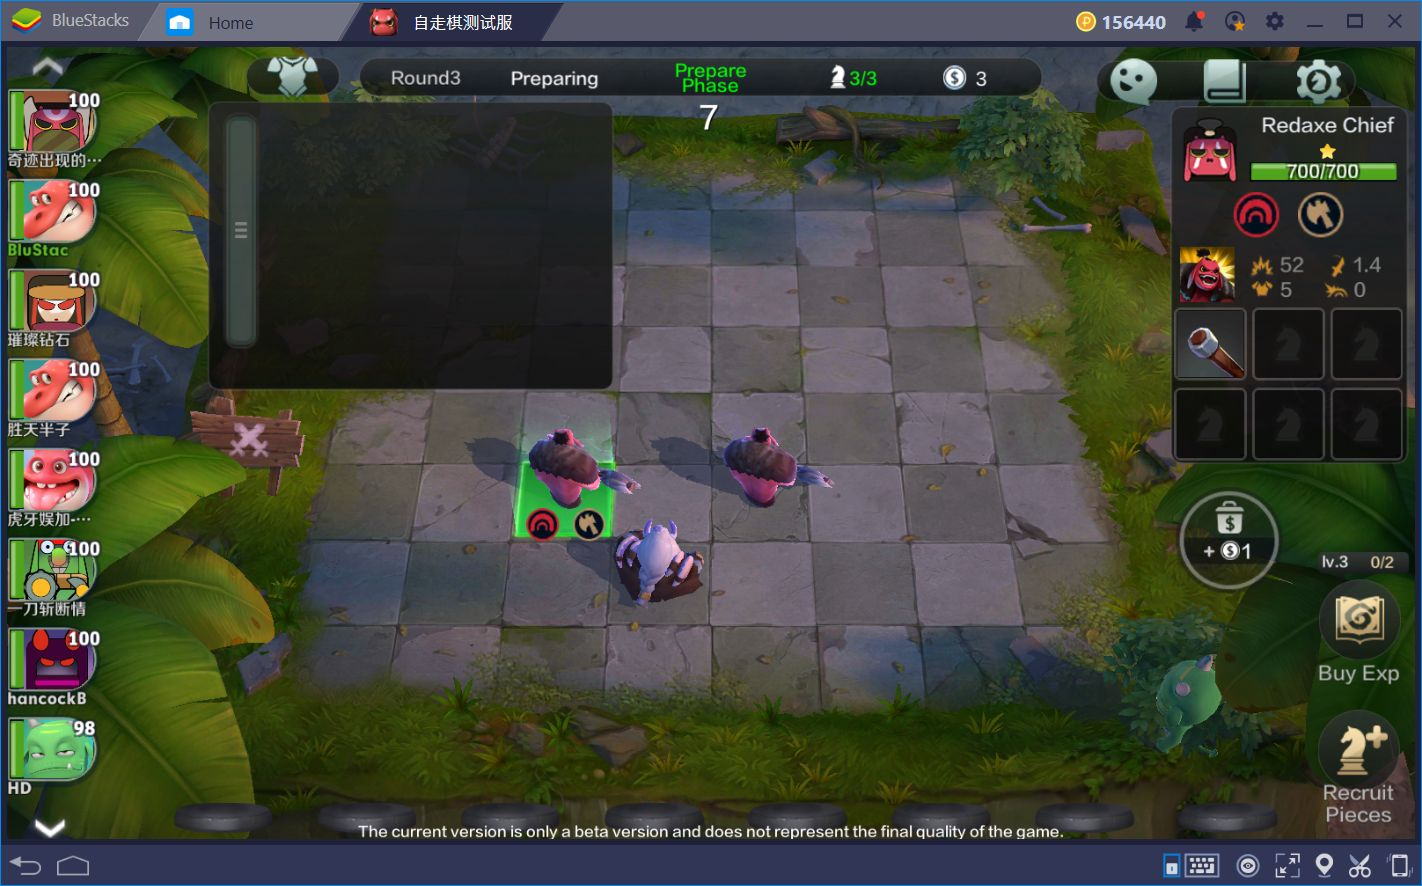 Auto Chess – The Popular Dota Custom Map, But on Your Mobile Device